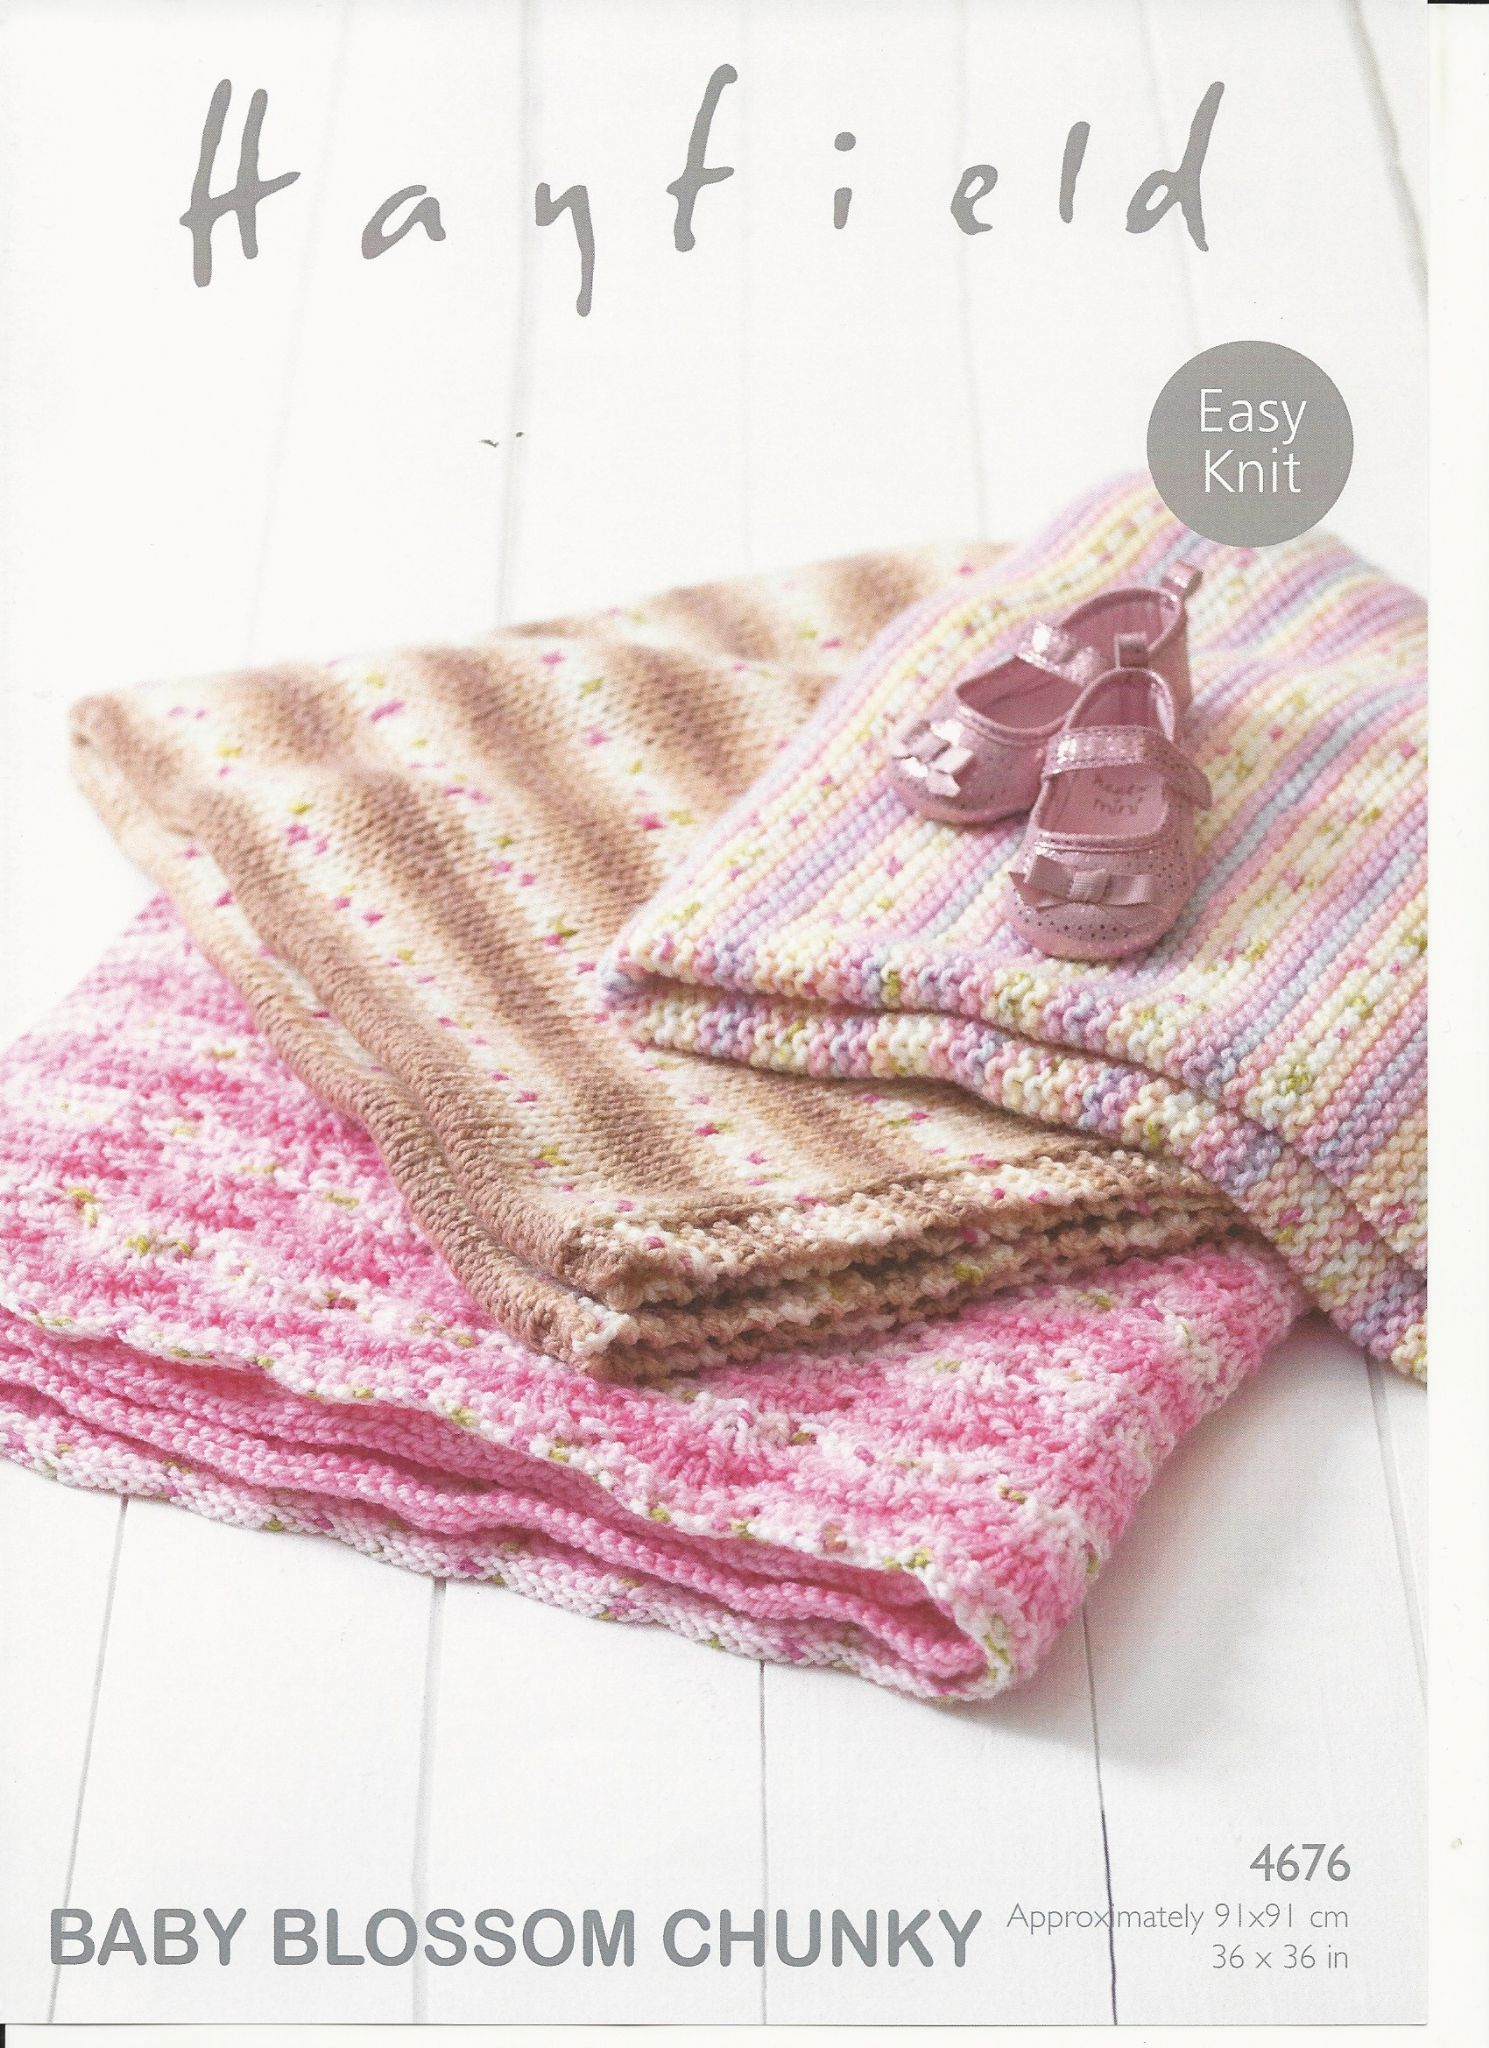 Hayfield Knitting Patterns For Babies : Hayfield Babies Blankets Knitting Pattern in Baby Blossom Chunky 4676